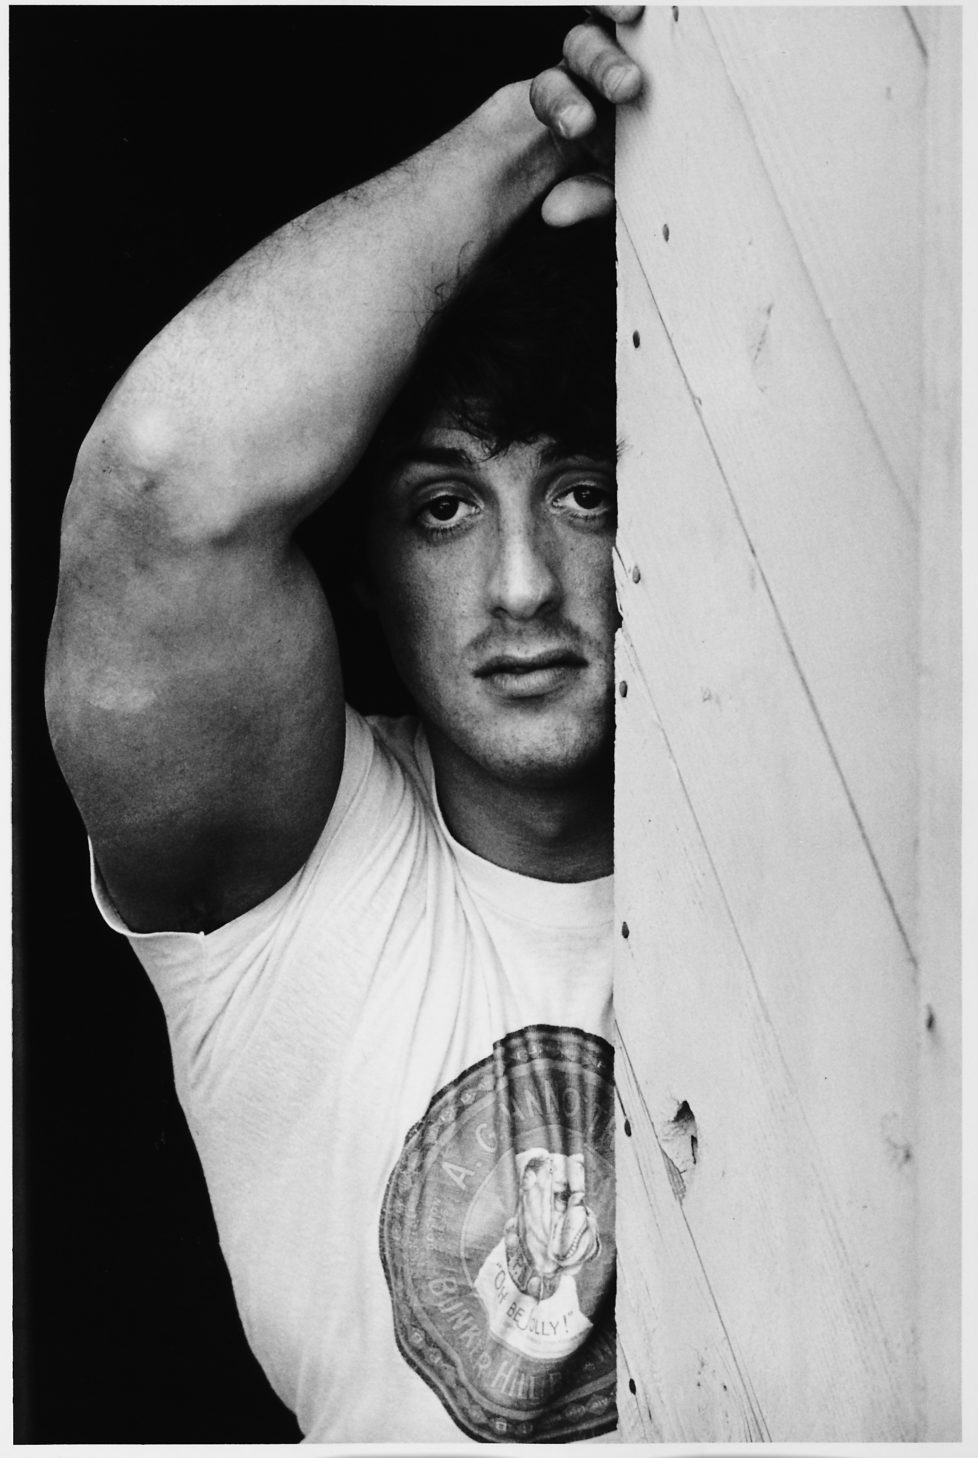 Portrait of actor Sylvester Stallone. (Photo by Alan Pappe/The LIFE Images Collection/Getty Images)